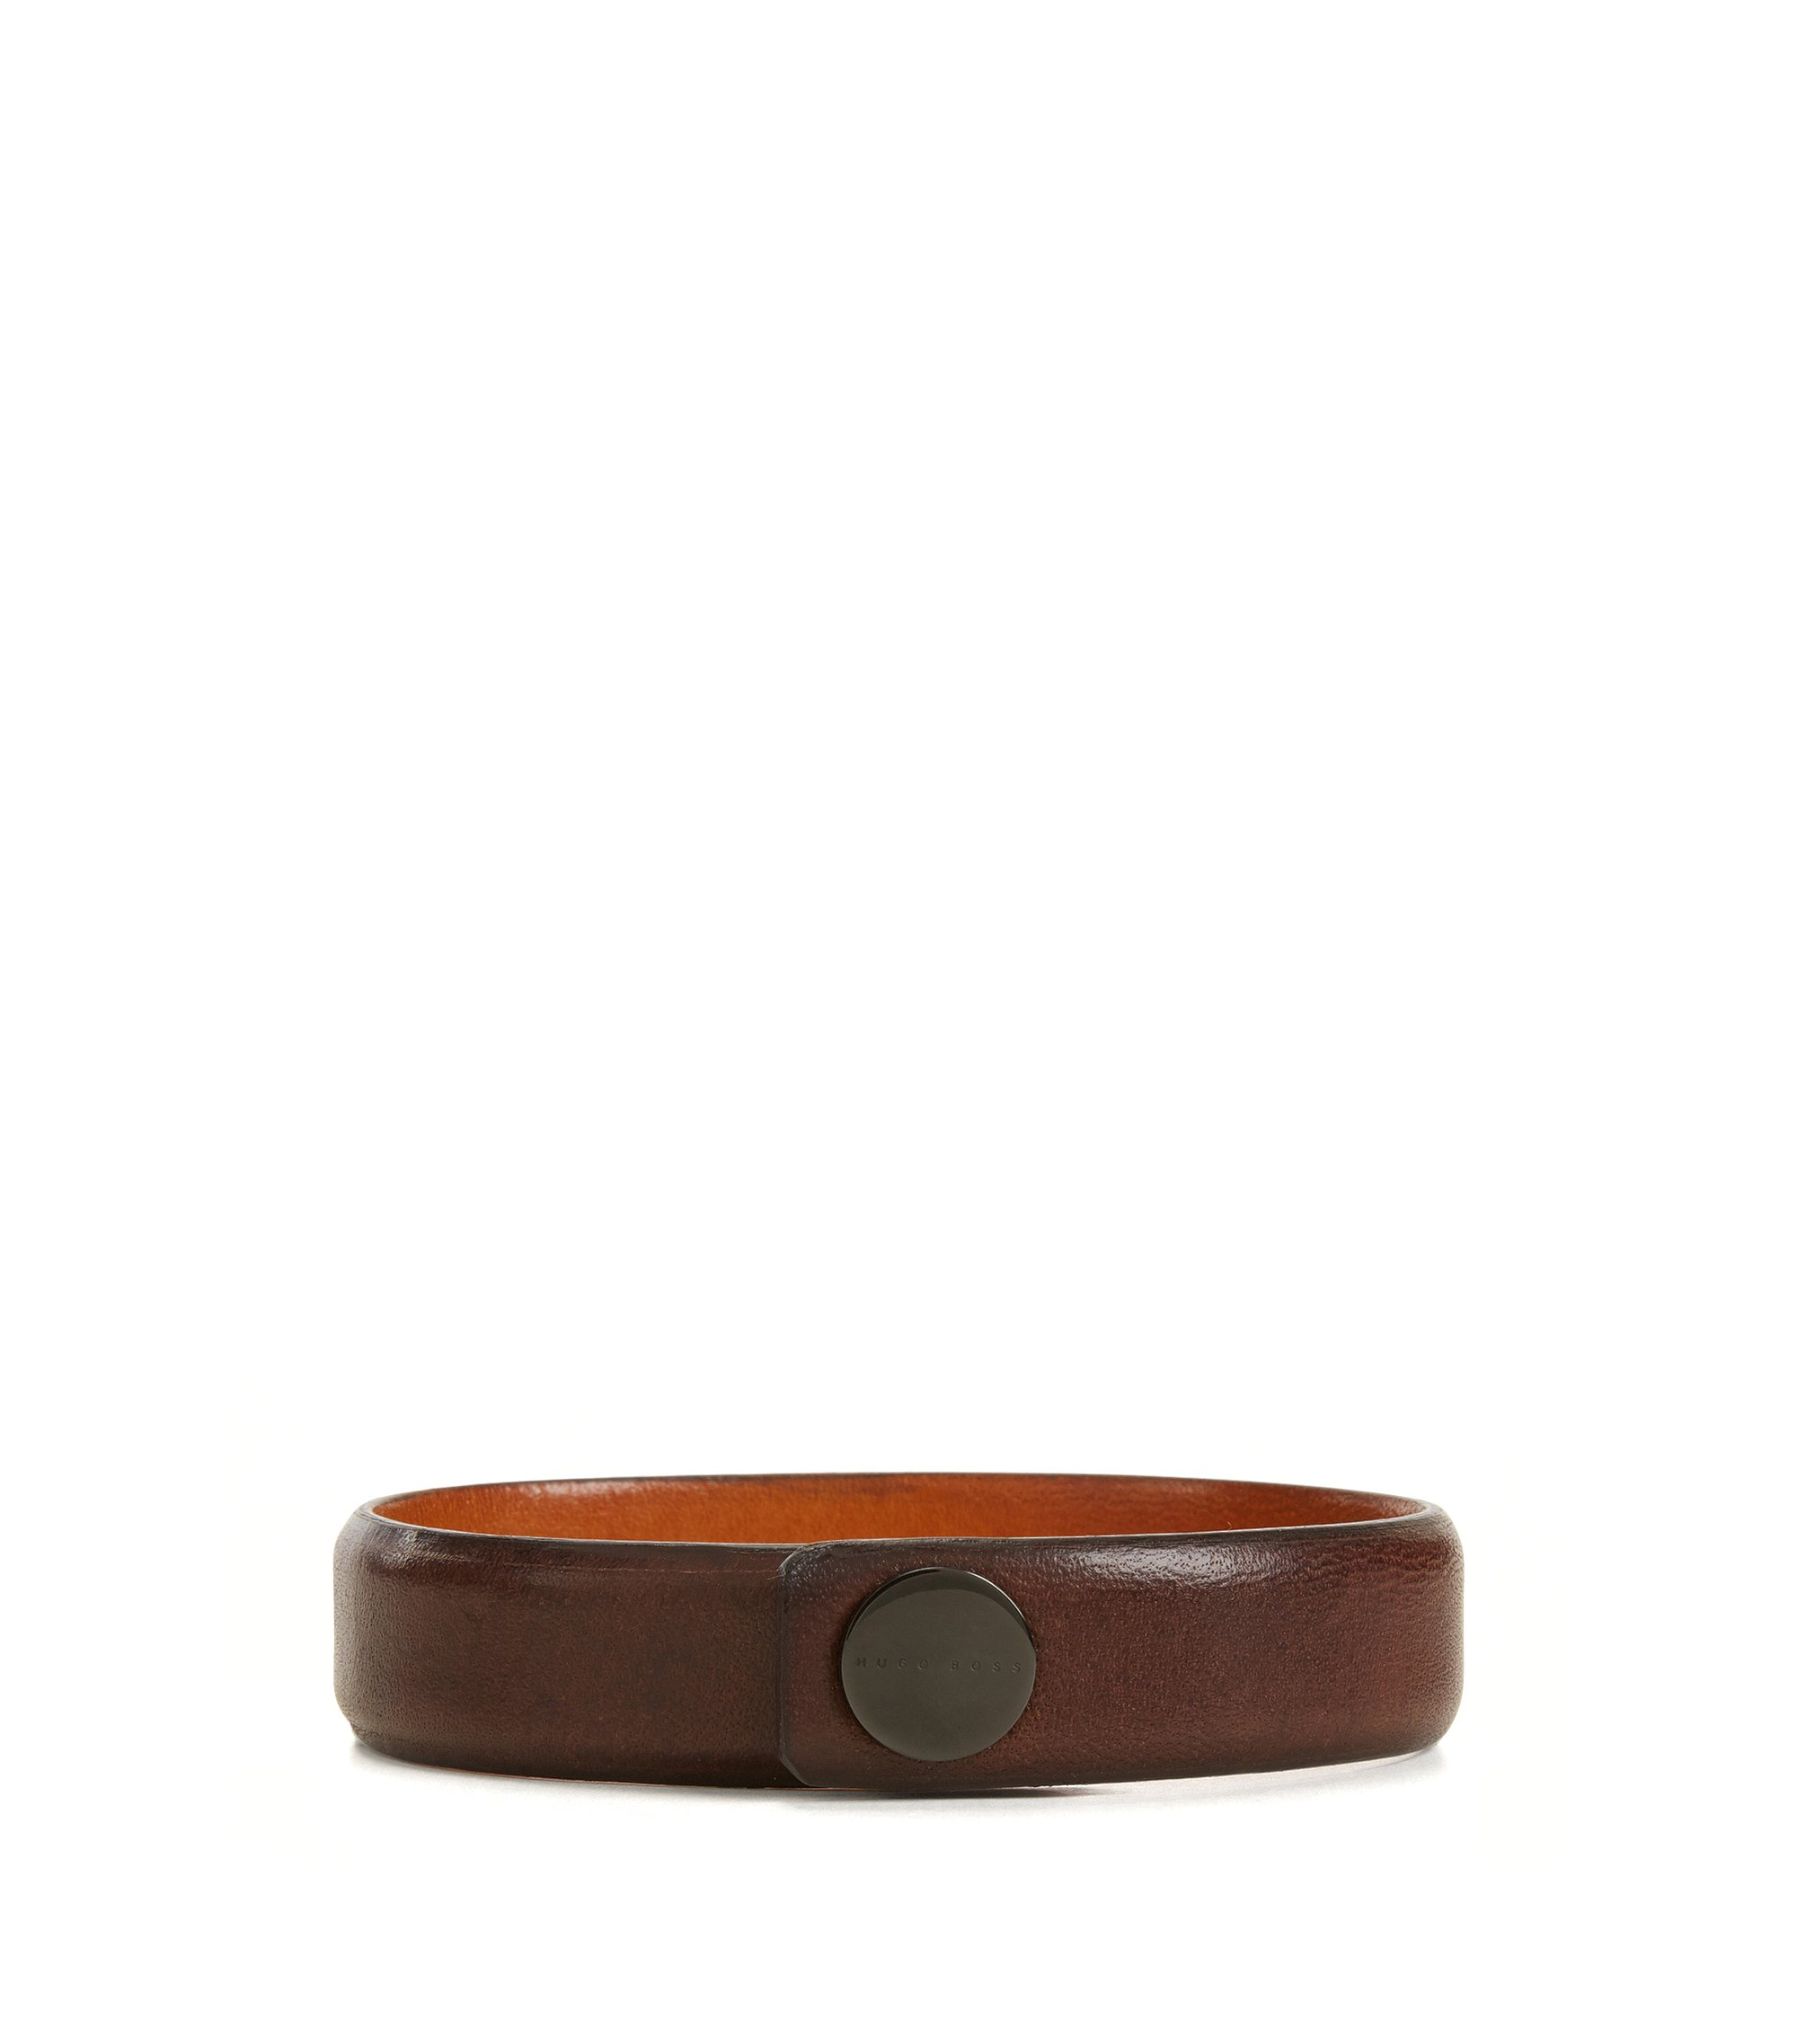 Grained leather bracelet with press-stud closure, Brown